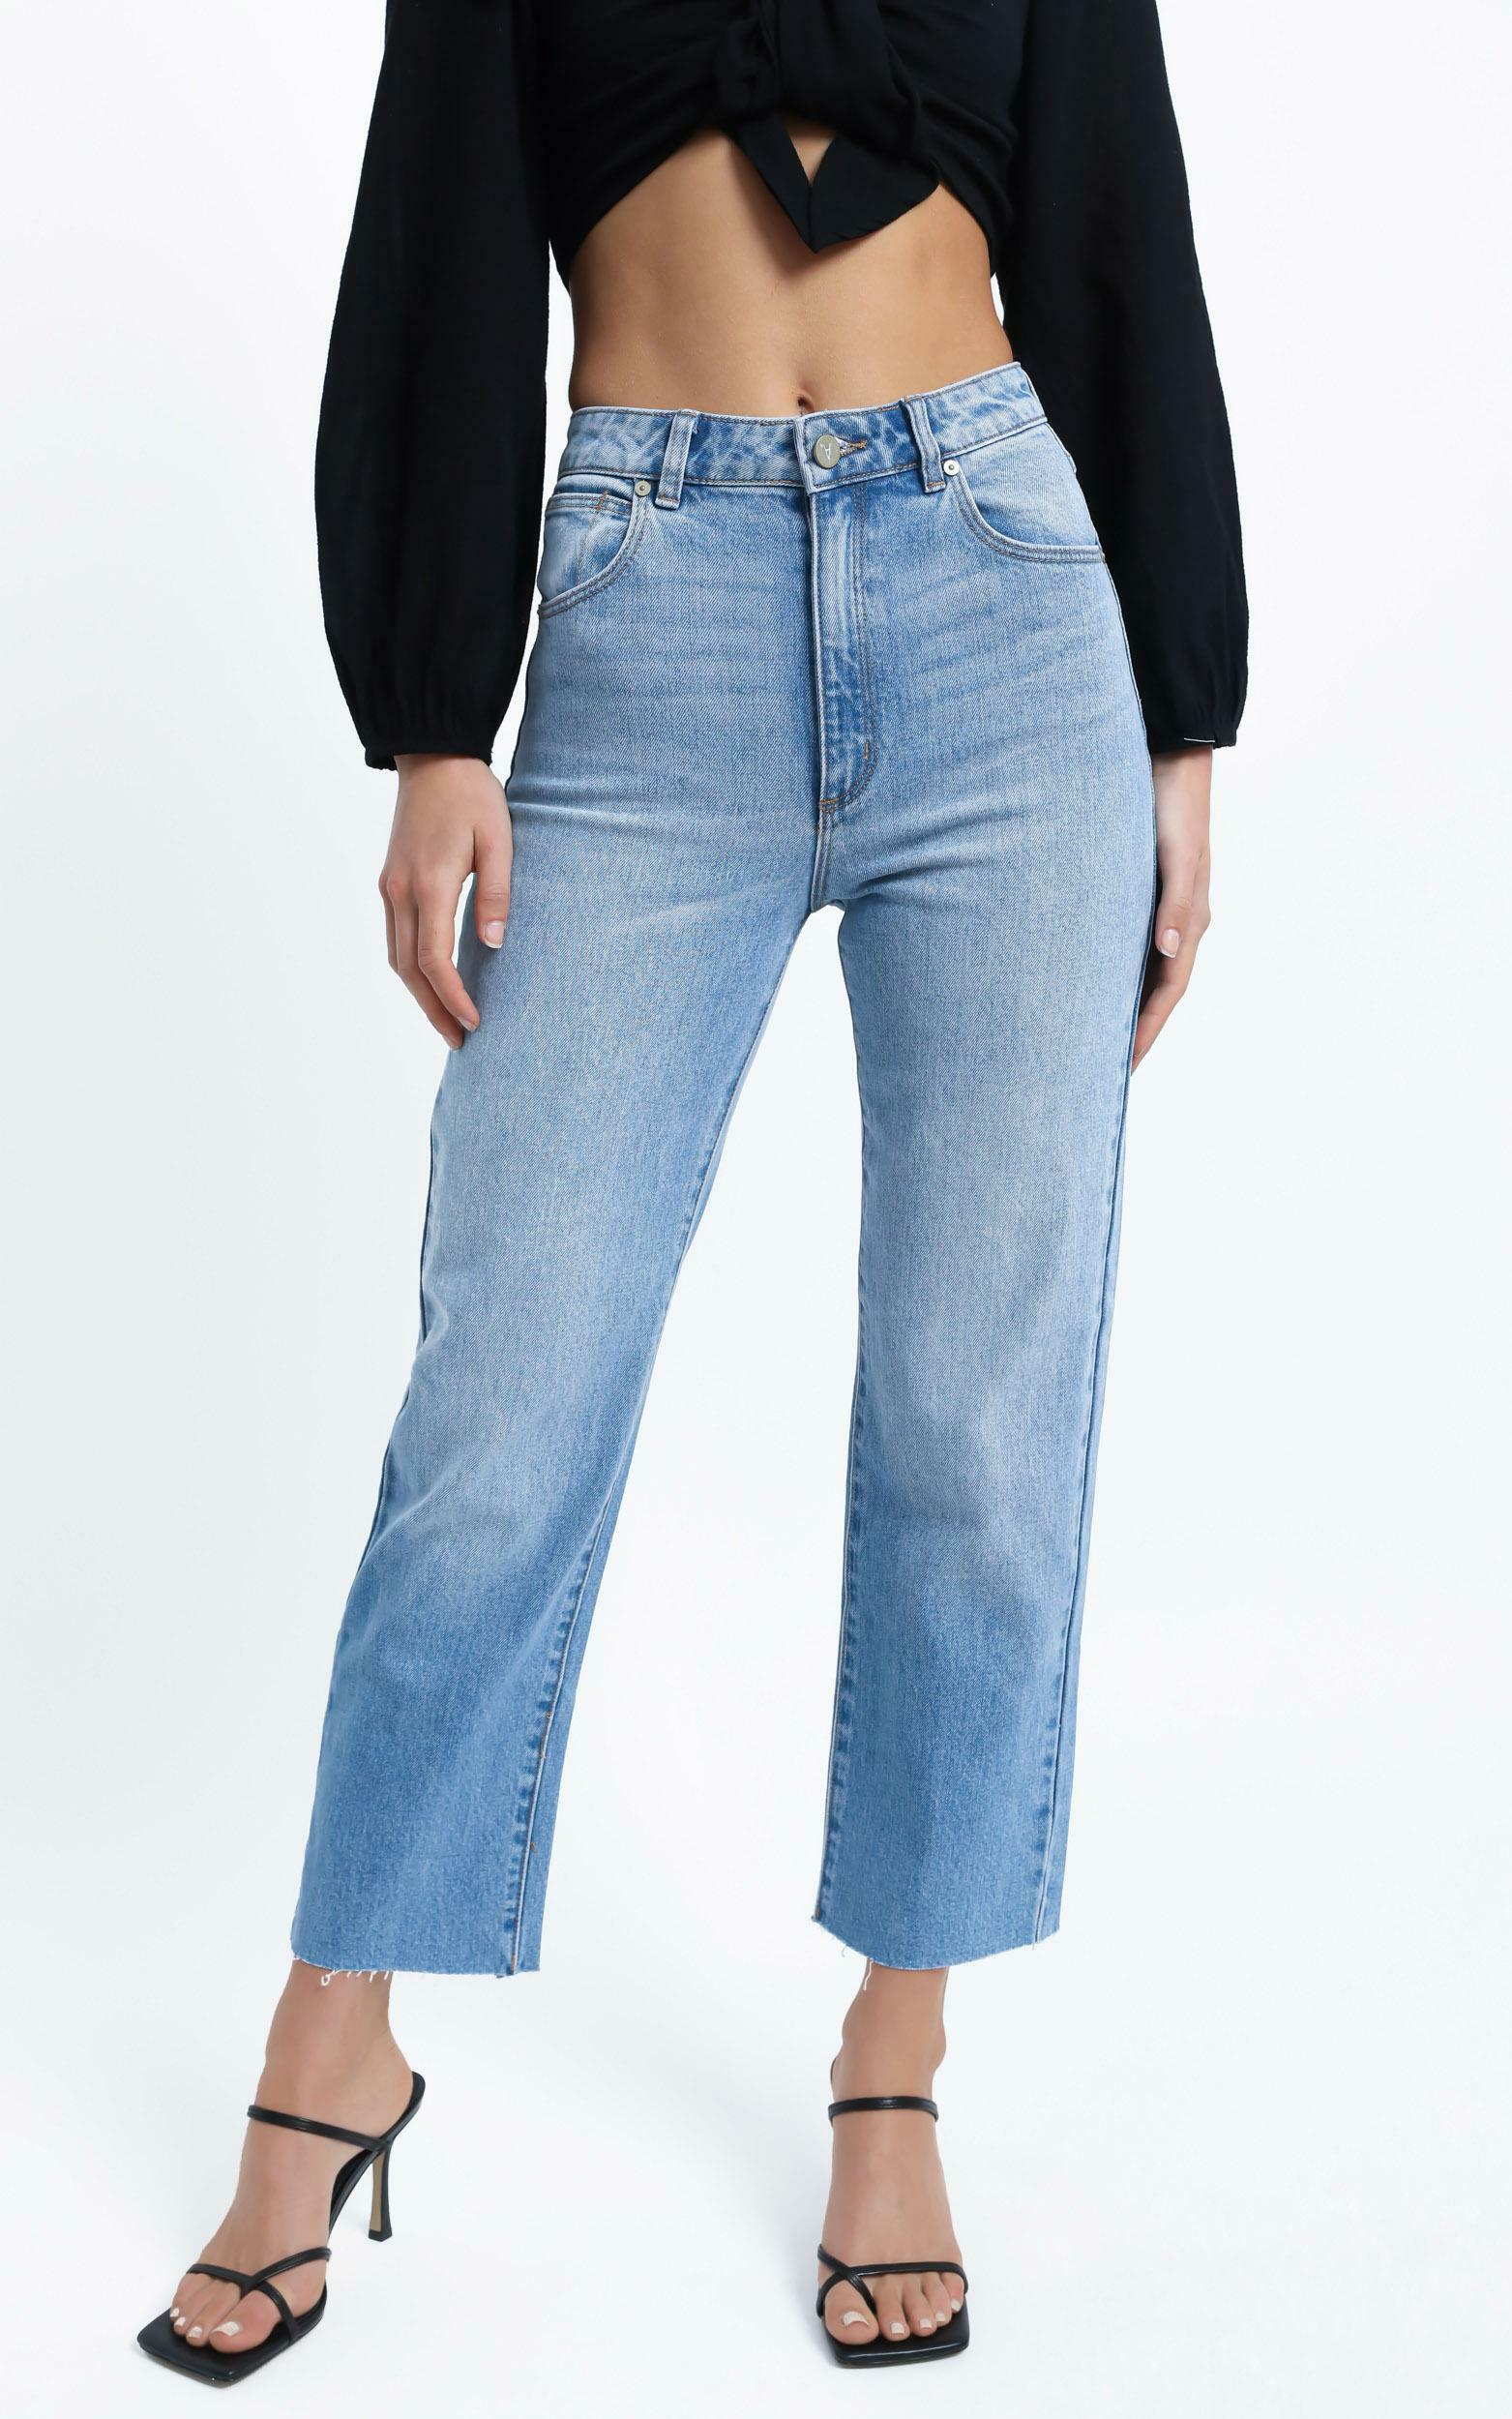 Abrand - A Venice Straight Jean in Alicia - 6 (XS), Blue, hi-res image number null